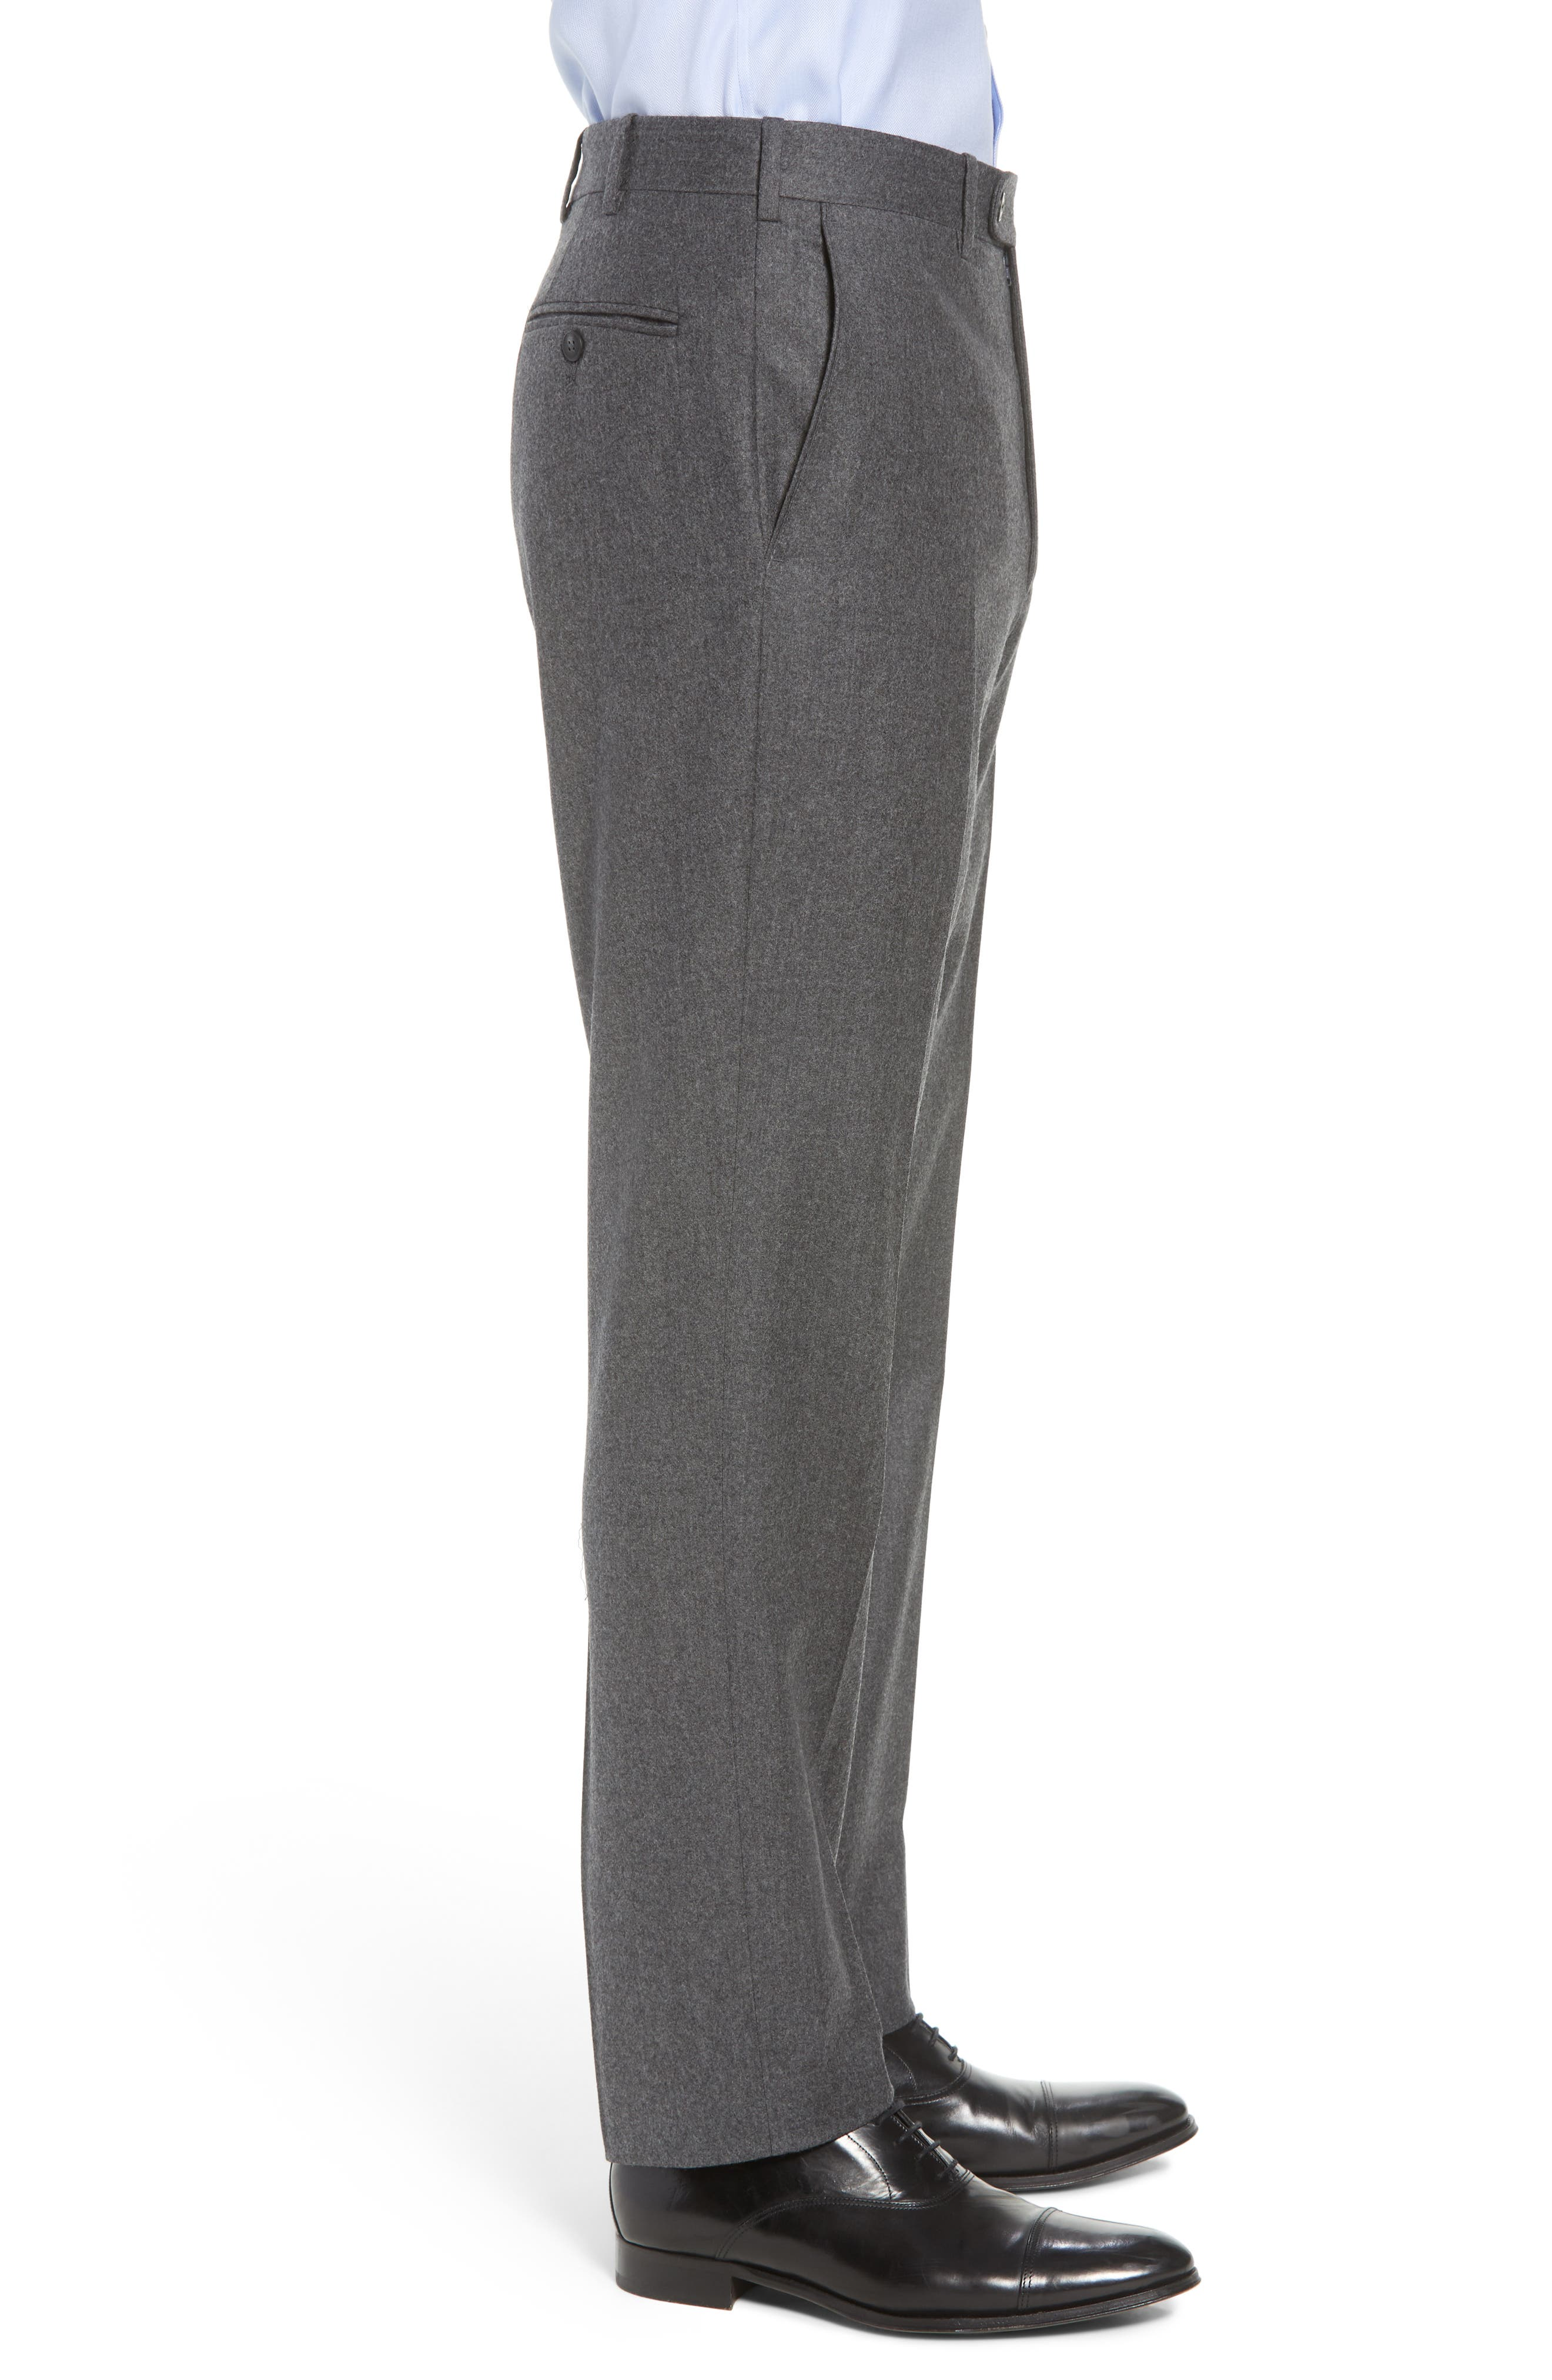 Torino Traditional Fit Flat Front Solid Wool & Cashmere Trousers,                             Alternate thumbnail 3, color,                             MID GREY